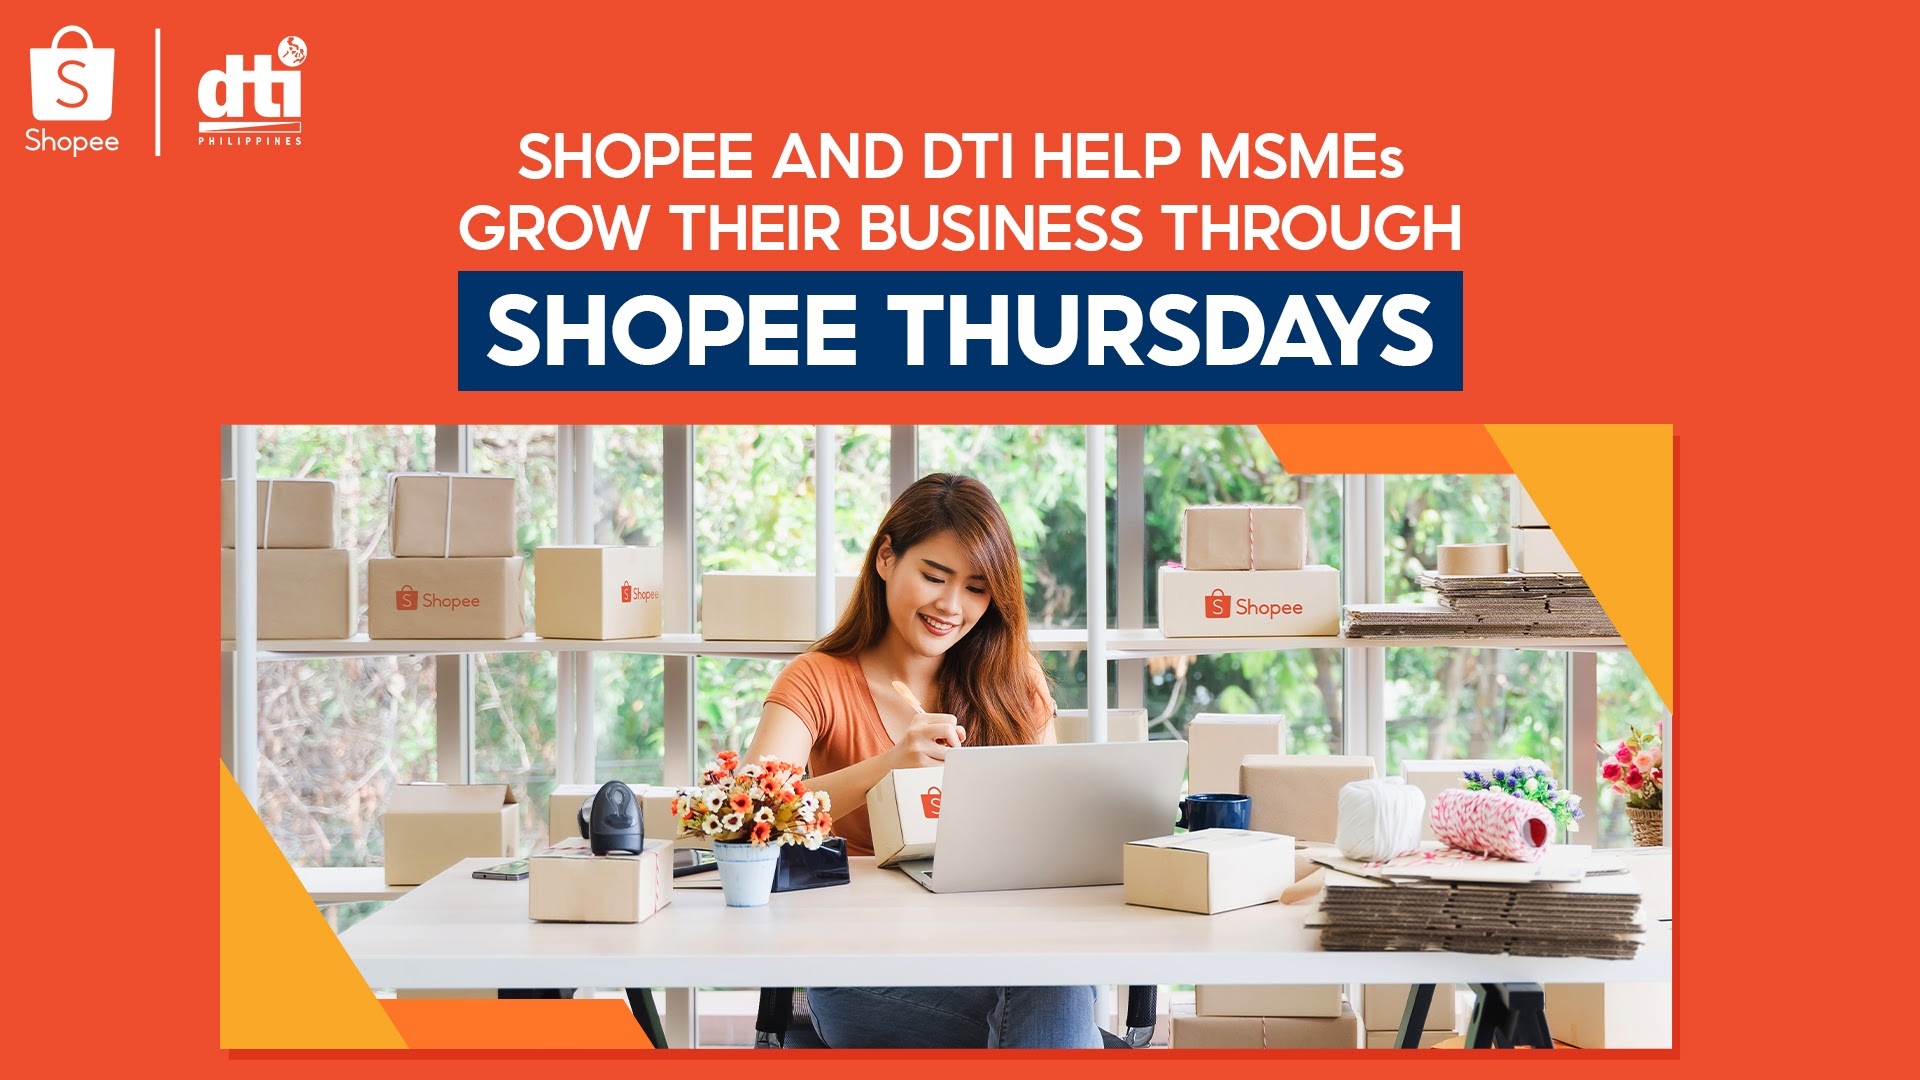 Shopee launches Shopee Thursdays with the Department of Trade and Industry to help MSMEs thrive in the E-commerce space